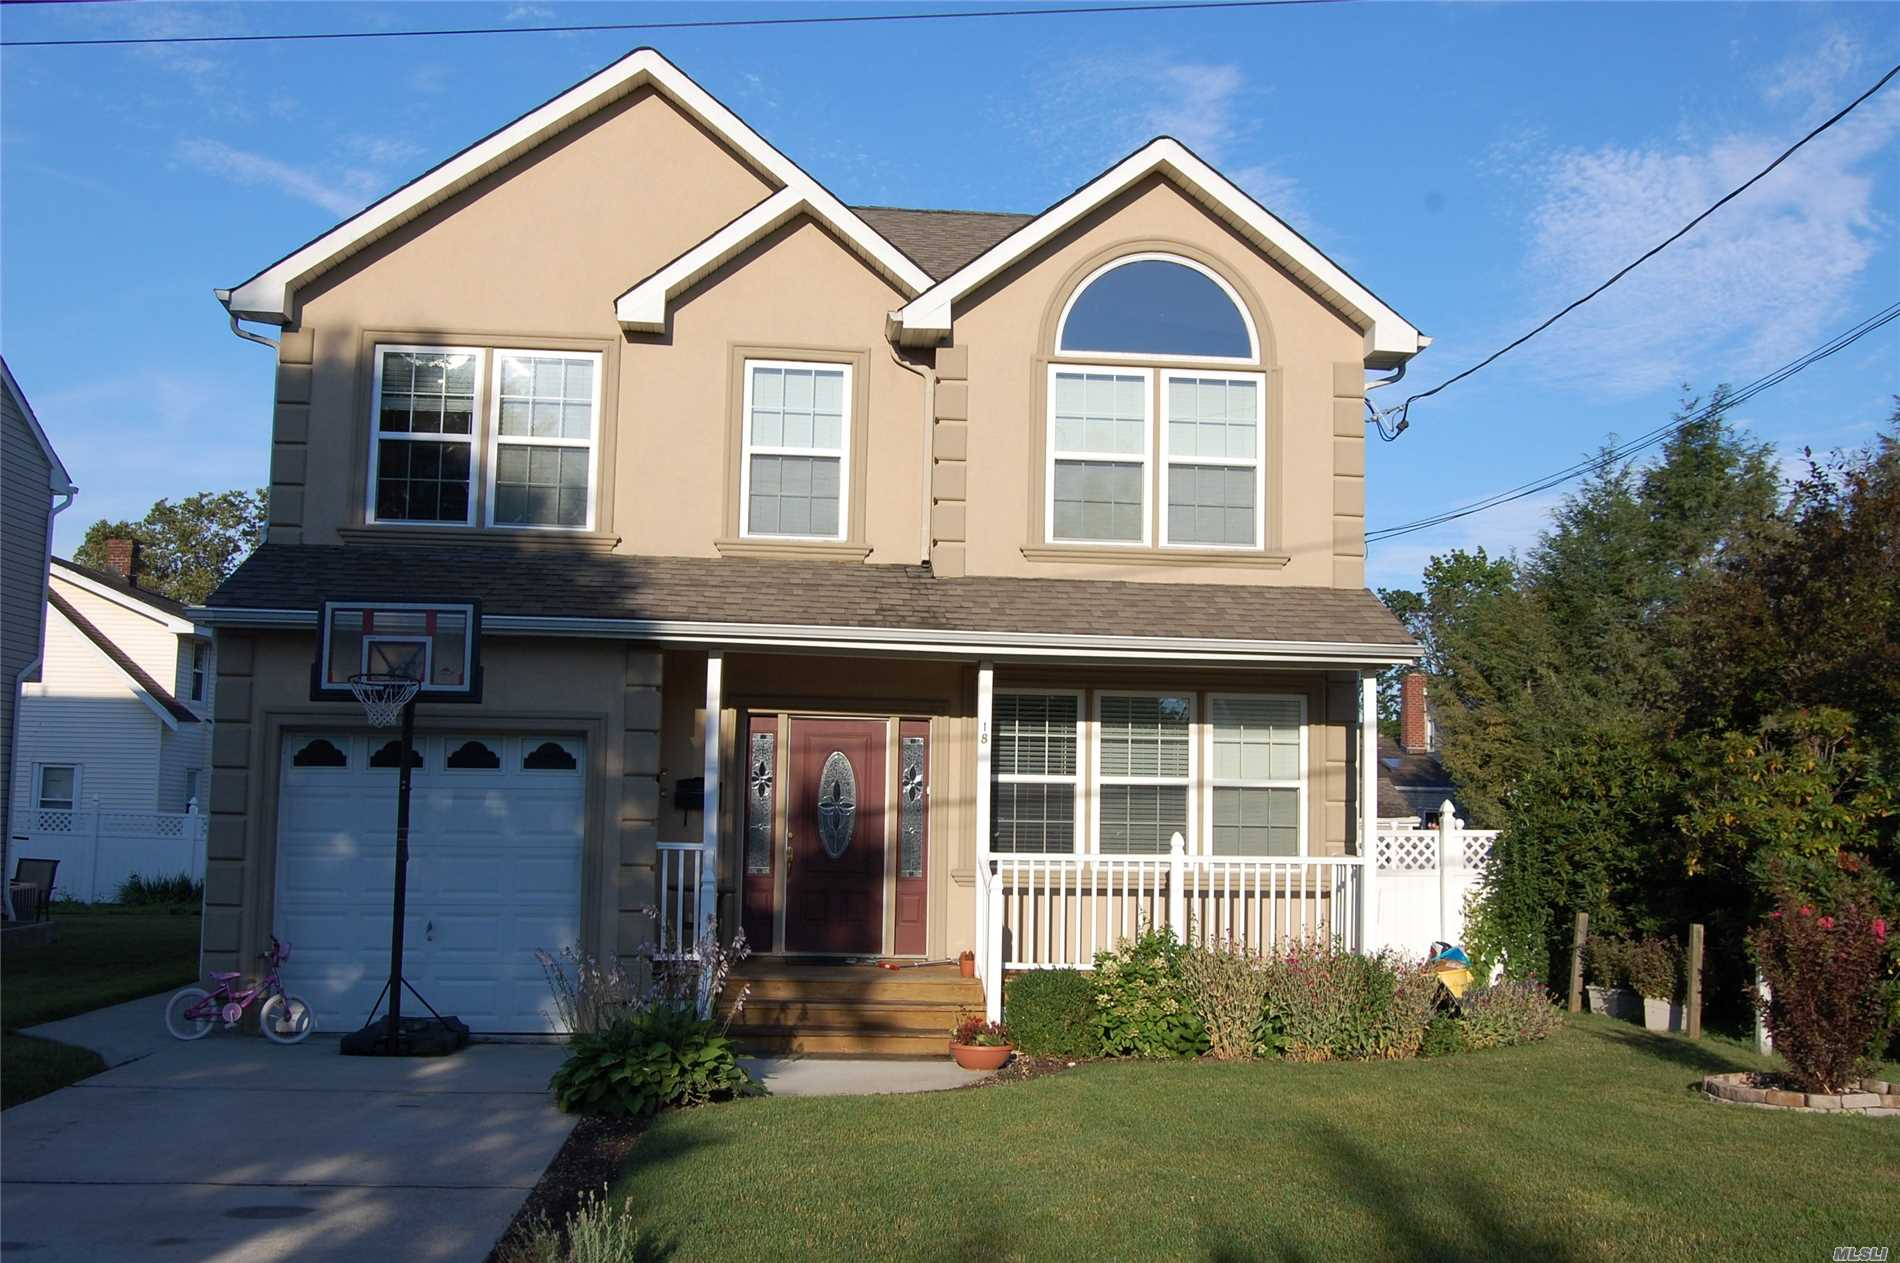 Location - Location. Like New (Built in 2007). Mid block mint, bright and open floor plan. $ bedrooms, 2.5 bathroom Colonial. Gourmet Kitchen with Granite and SS appliances and Pantry. Inside entrance from garage. Tenants need to go through NTN screening.